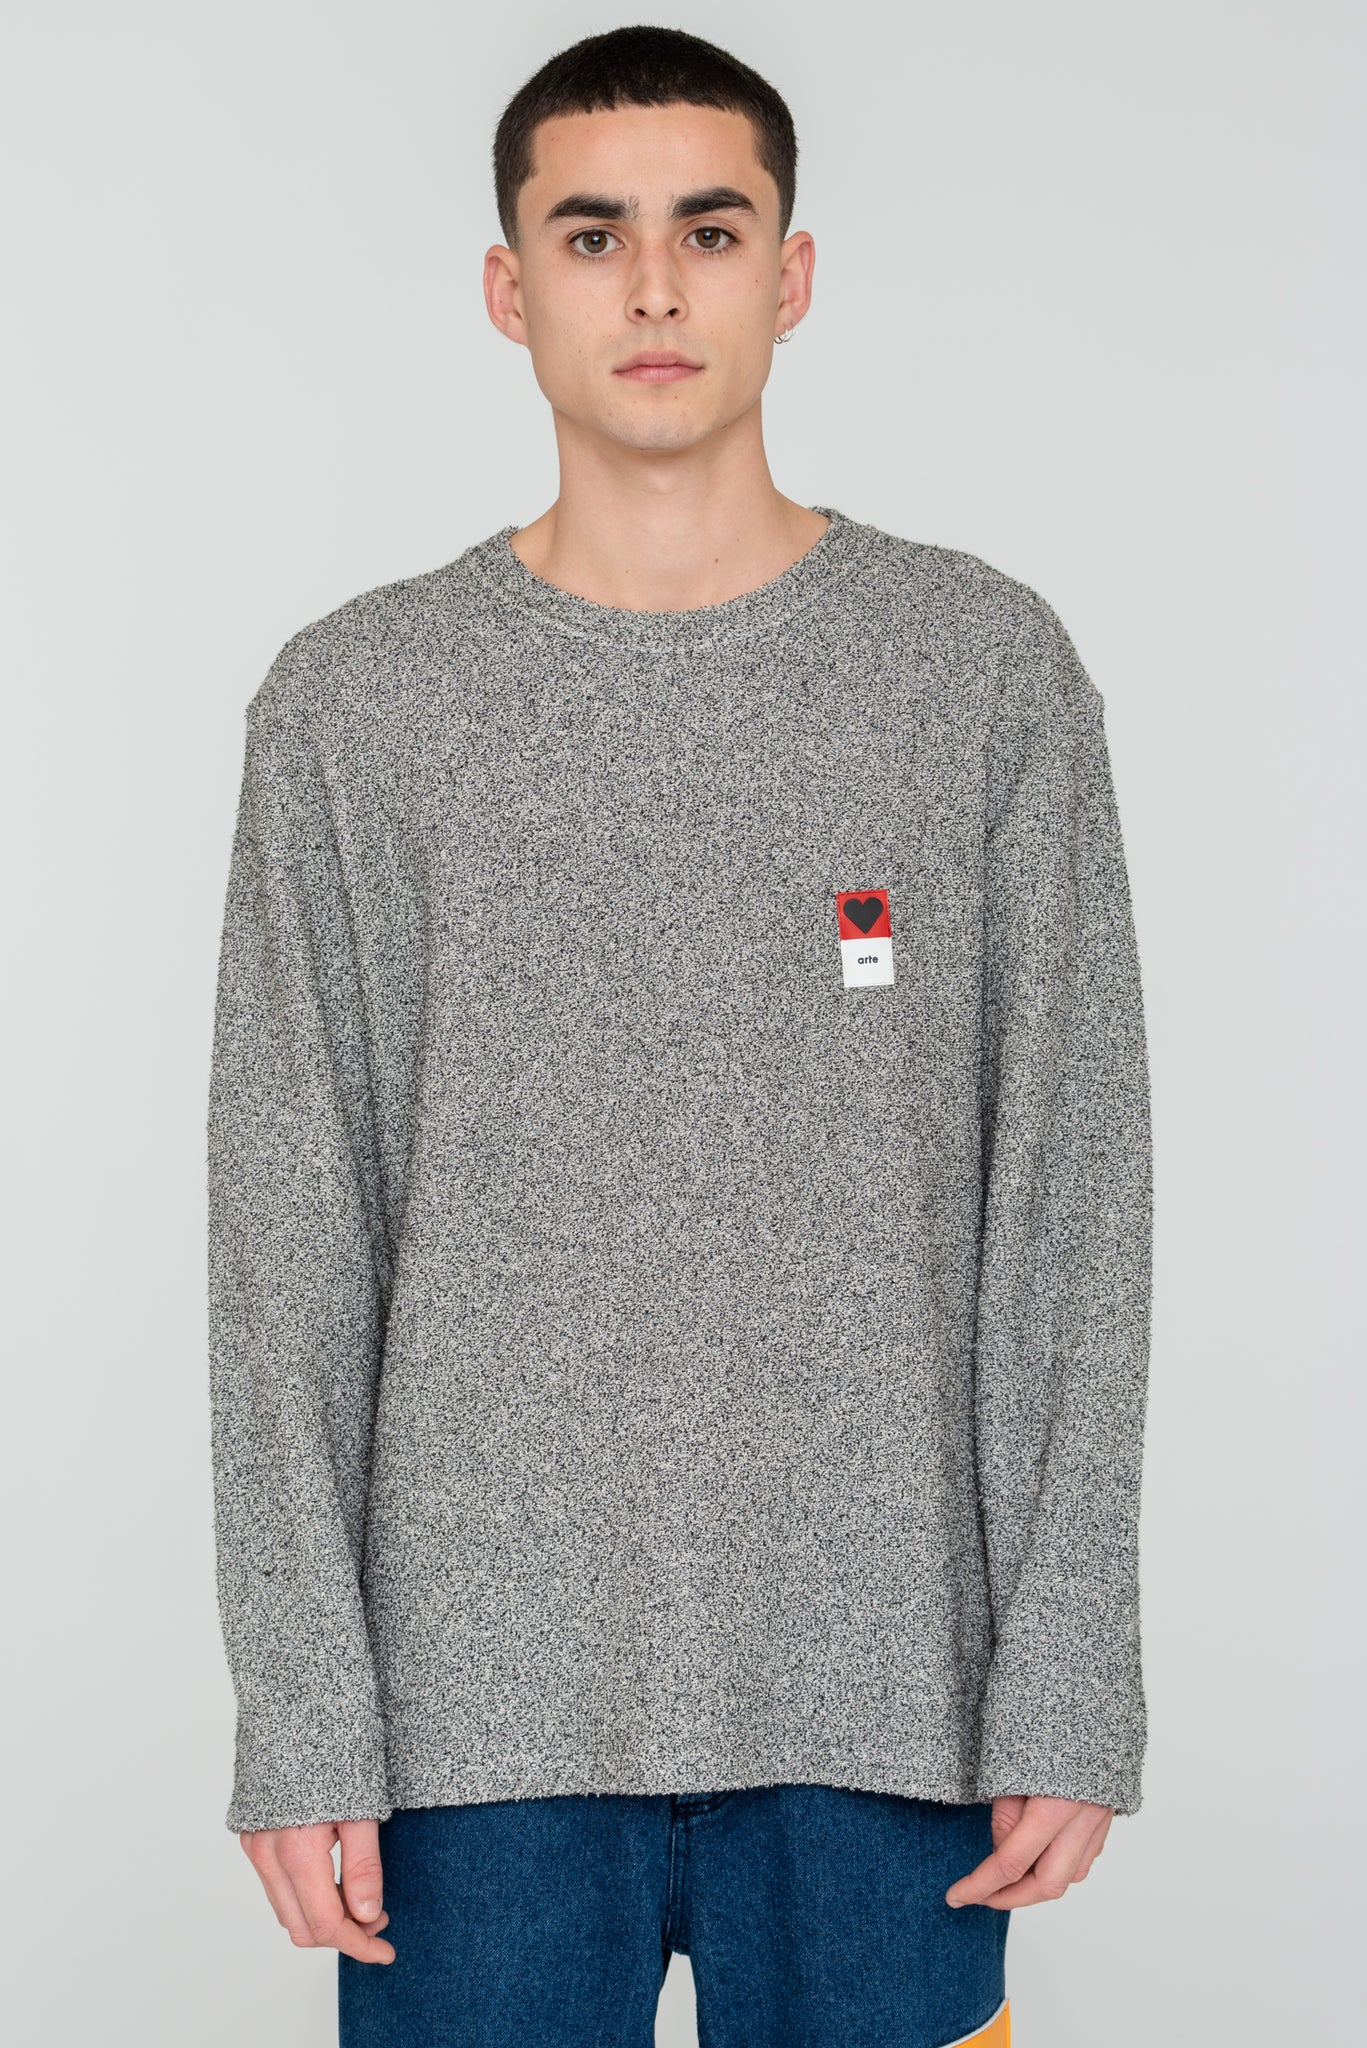 Curt Rubber Patch Sweatshirt - Arte Antwerp